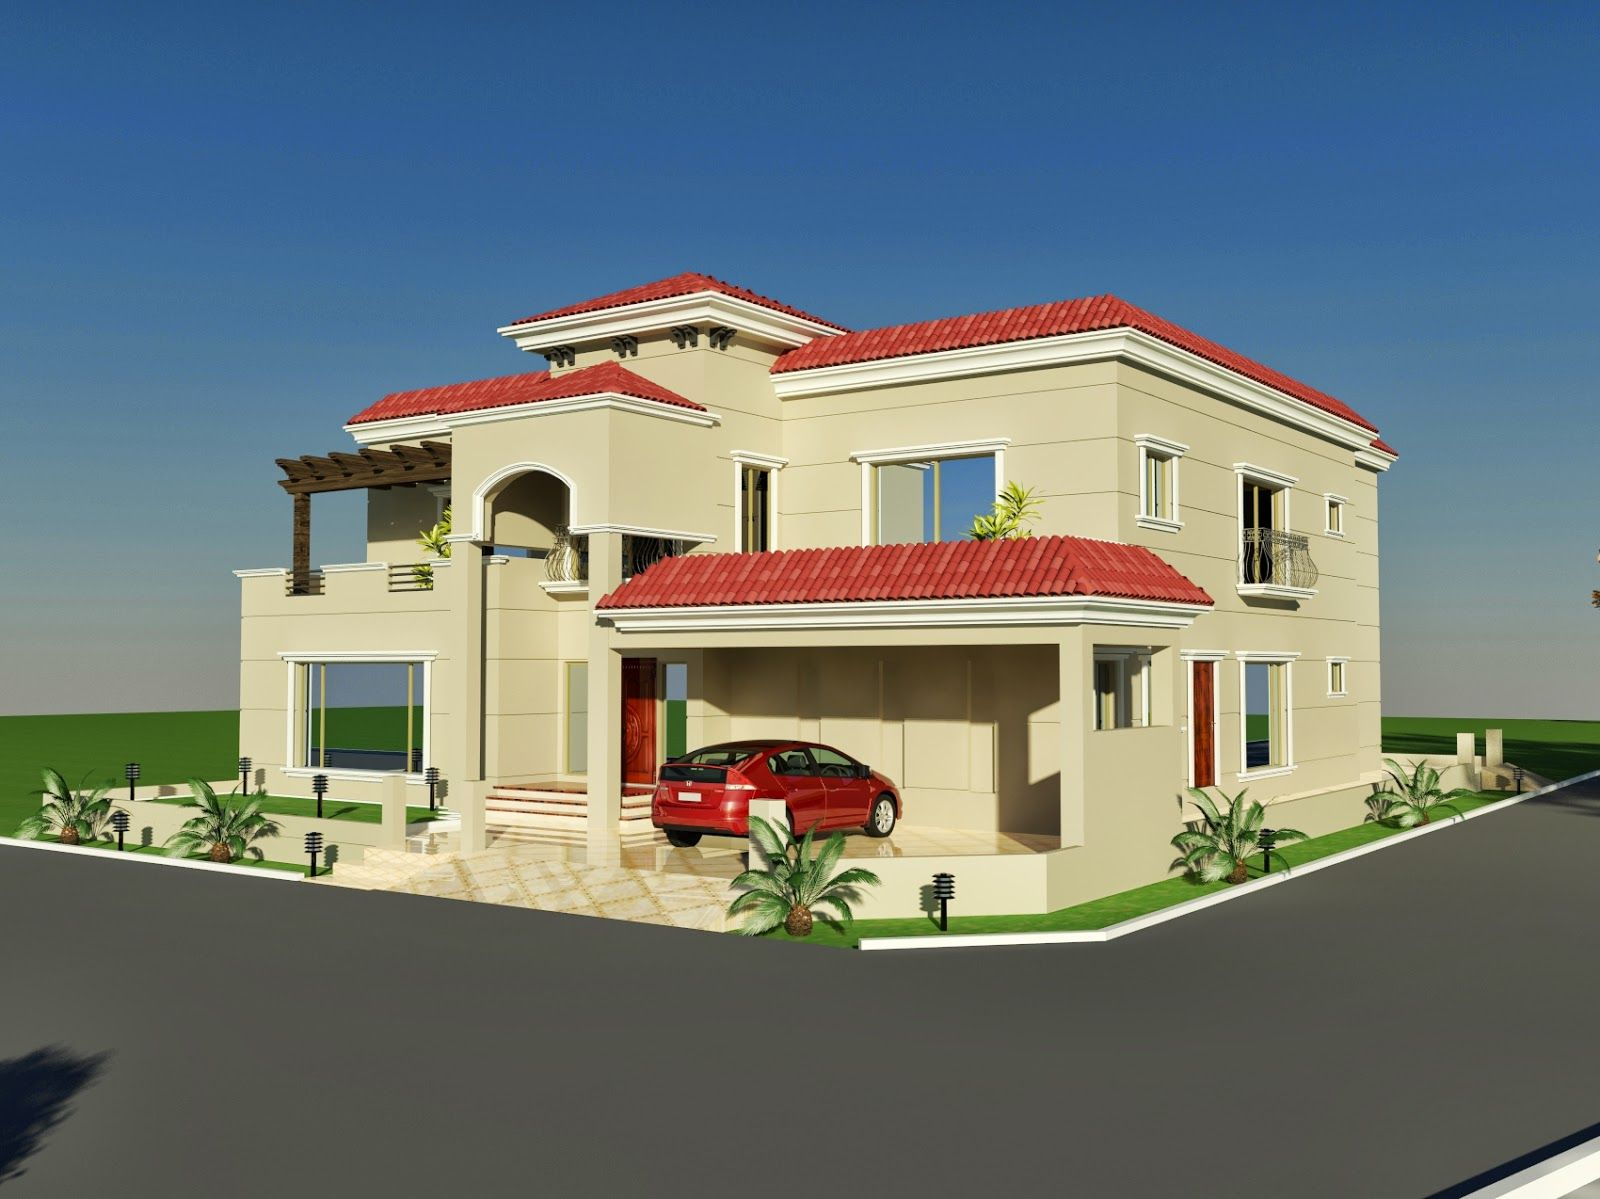 Home Design In Pakistan pakistani house 8 16608863_1_novthu803392012img3_600_900 l 3d view 10 marla op 1 60 X 100 Wapda Town 1 Kanal House Design 3d Front Elevation In Lahore